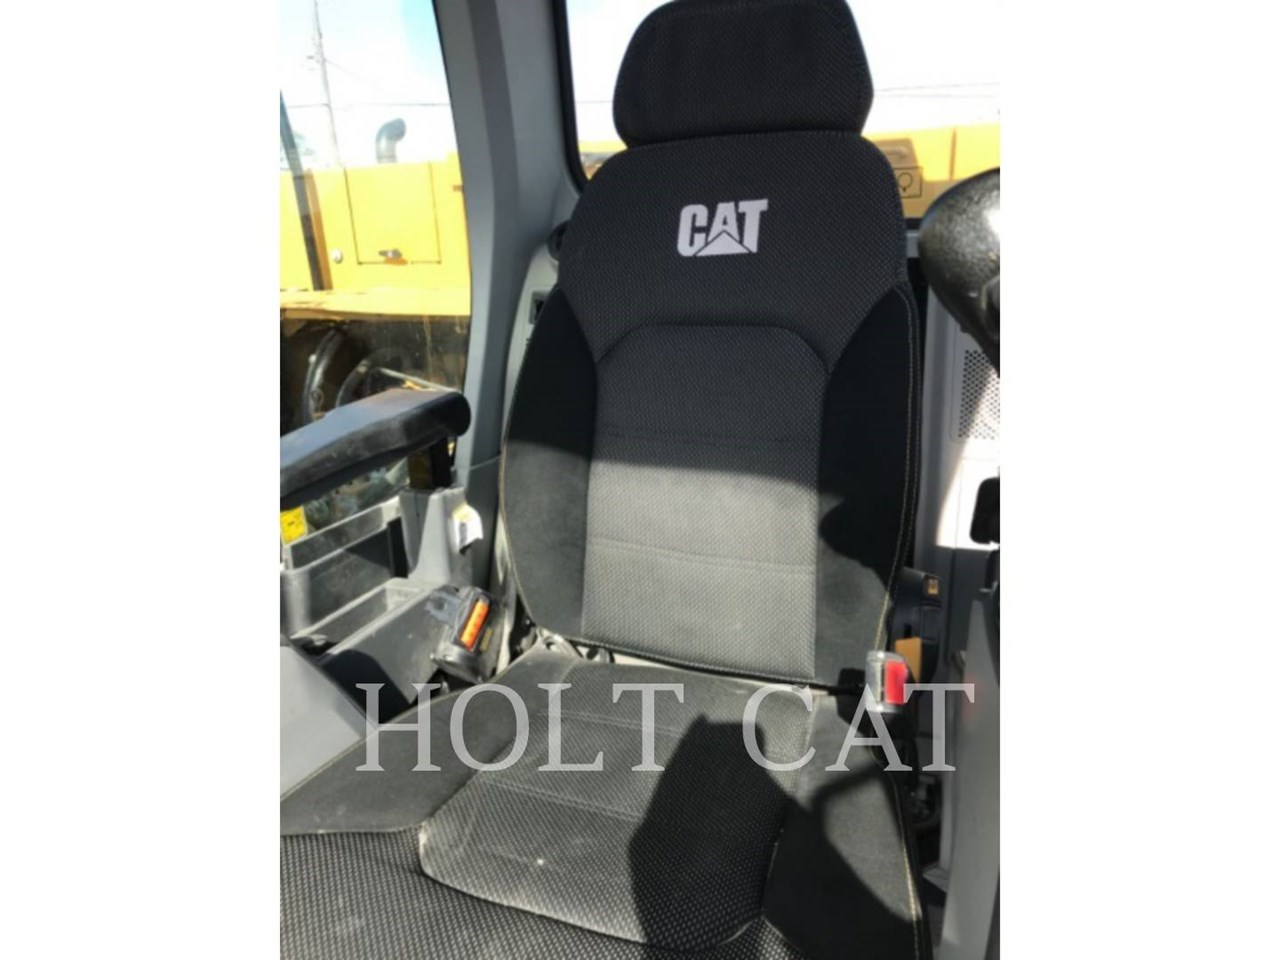 2019 Caterpillar 320 Image 7